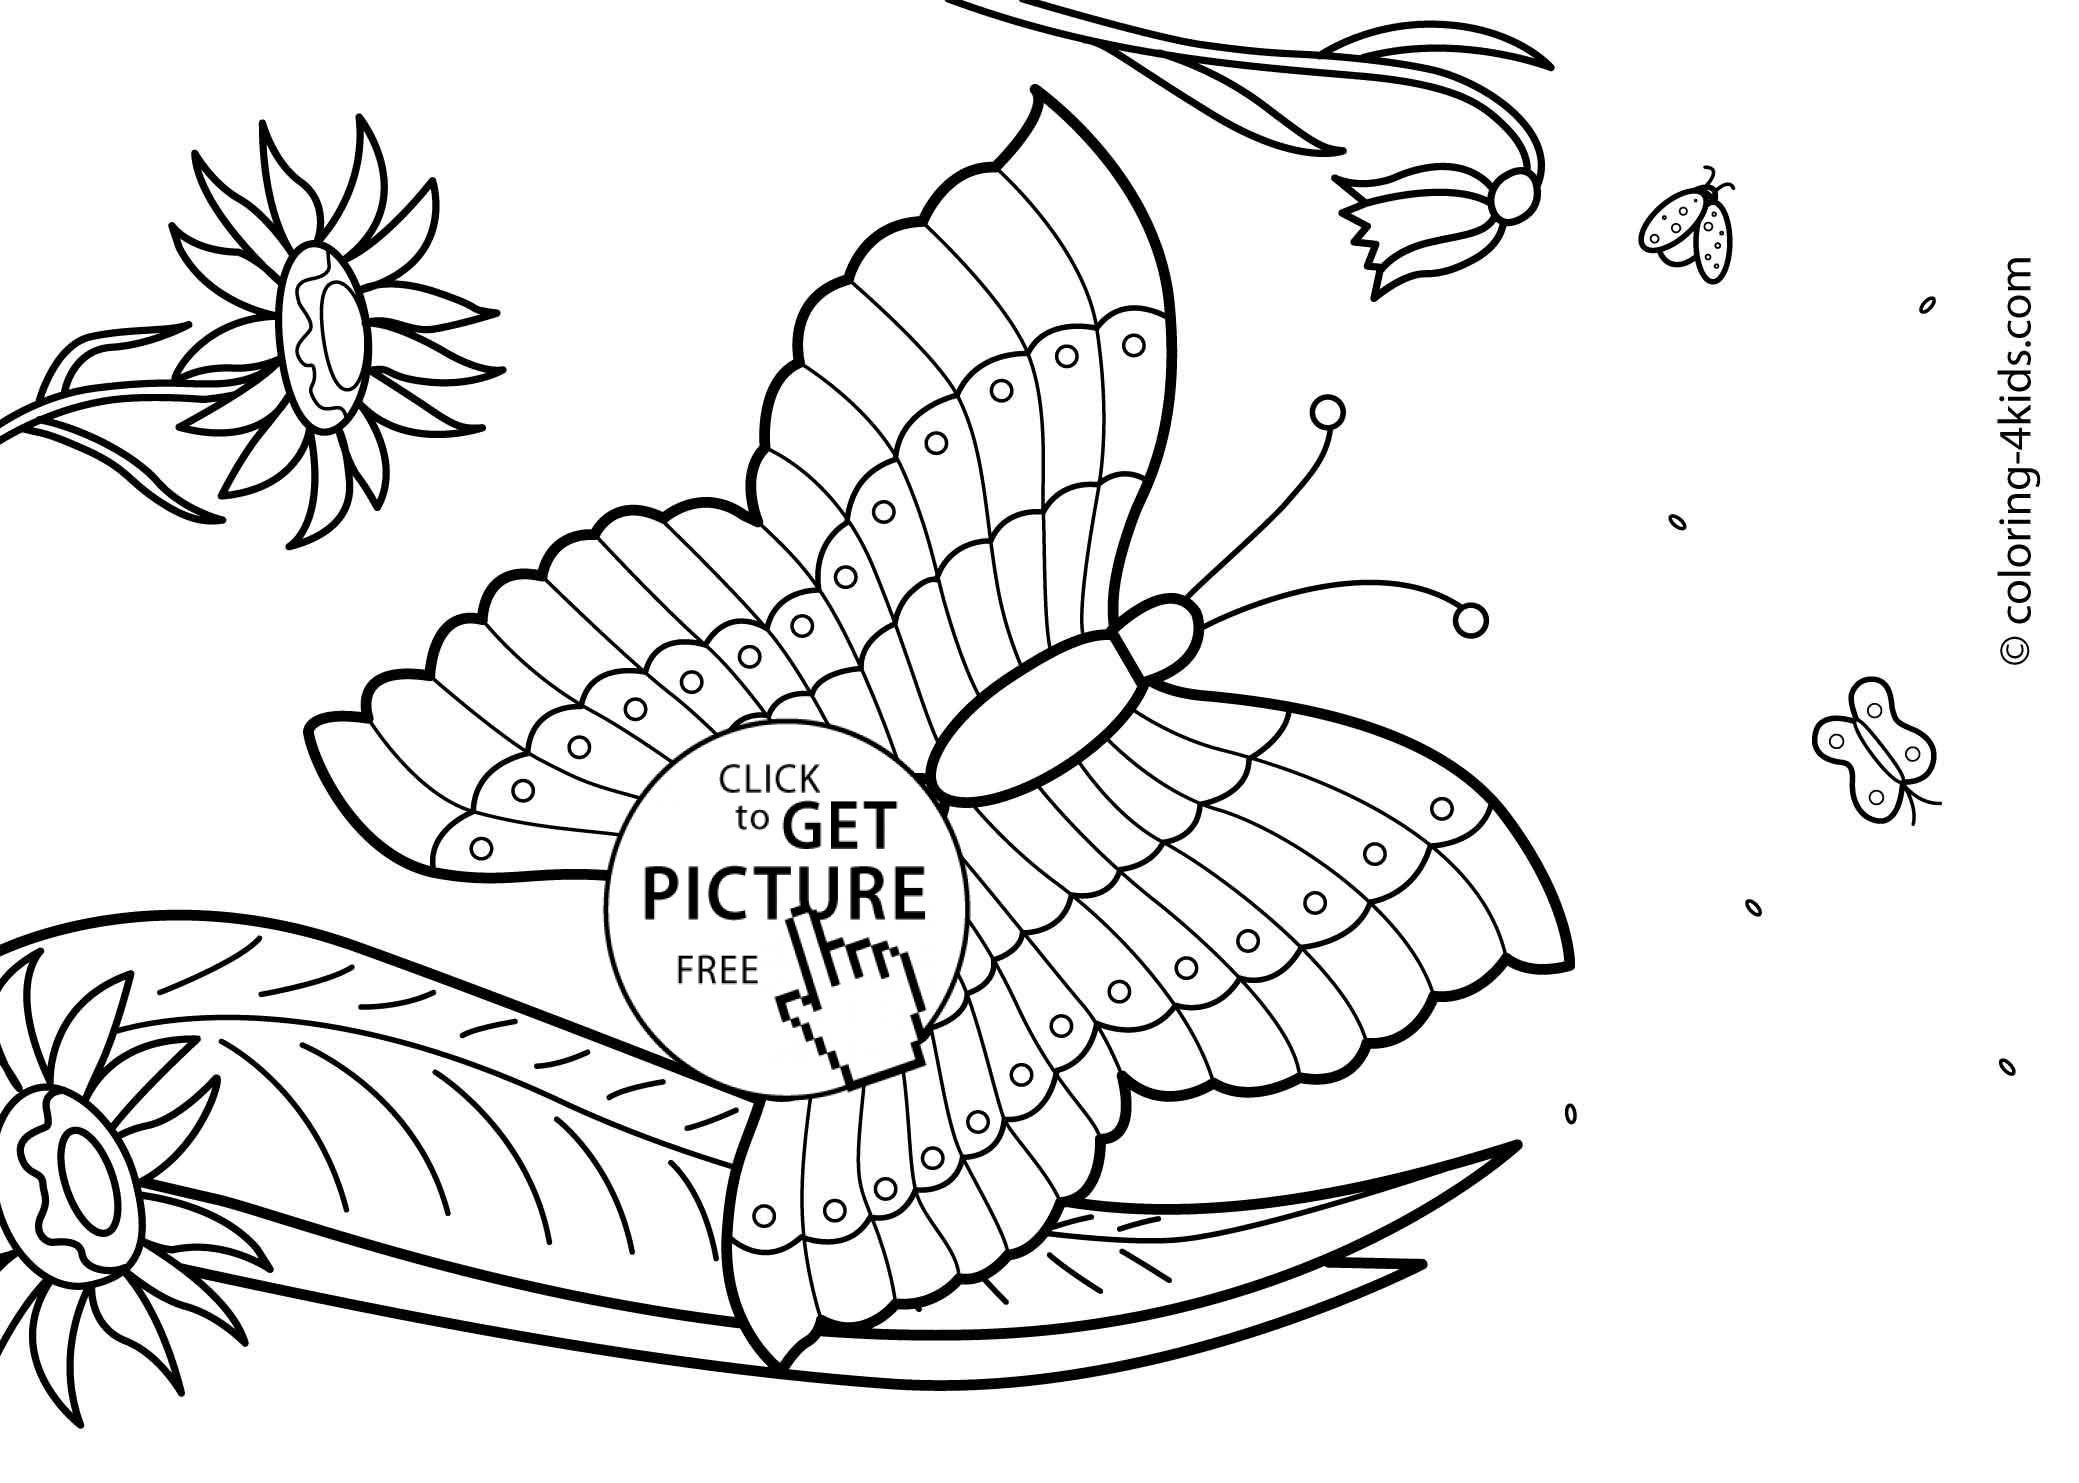 Summer Coloring Pages For Kids To Print Out - Coloring Home